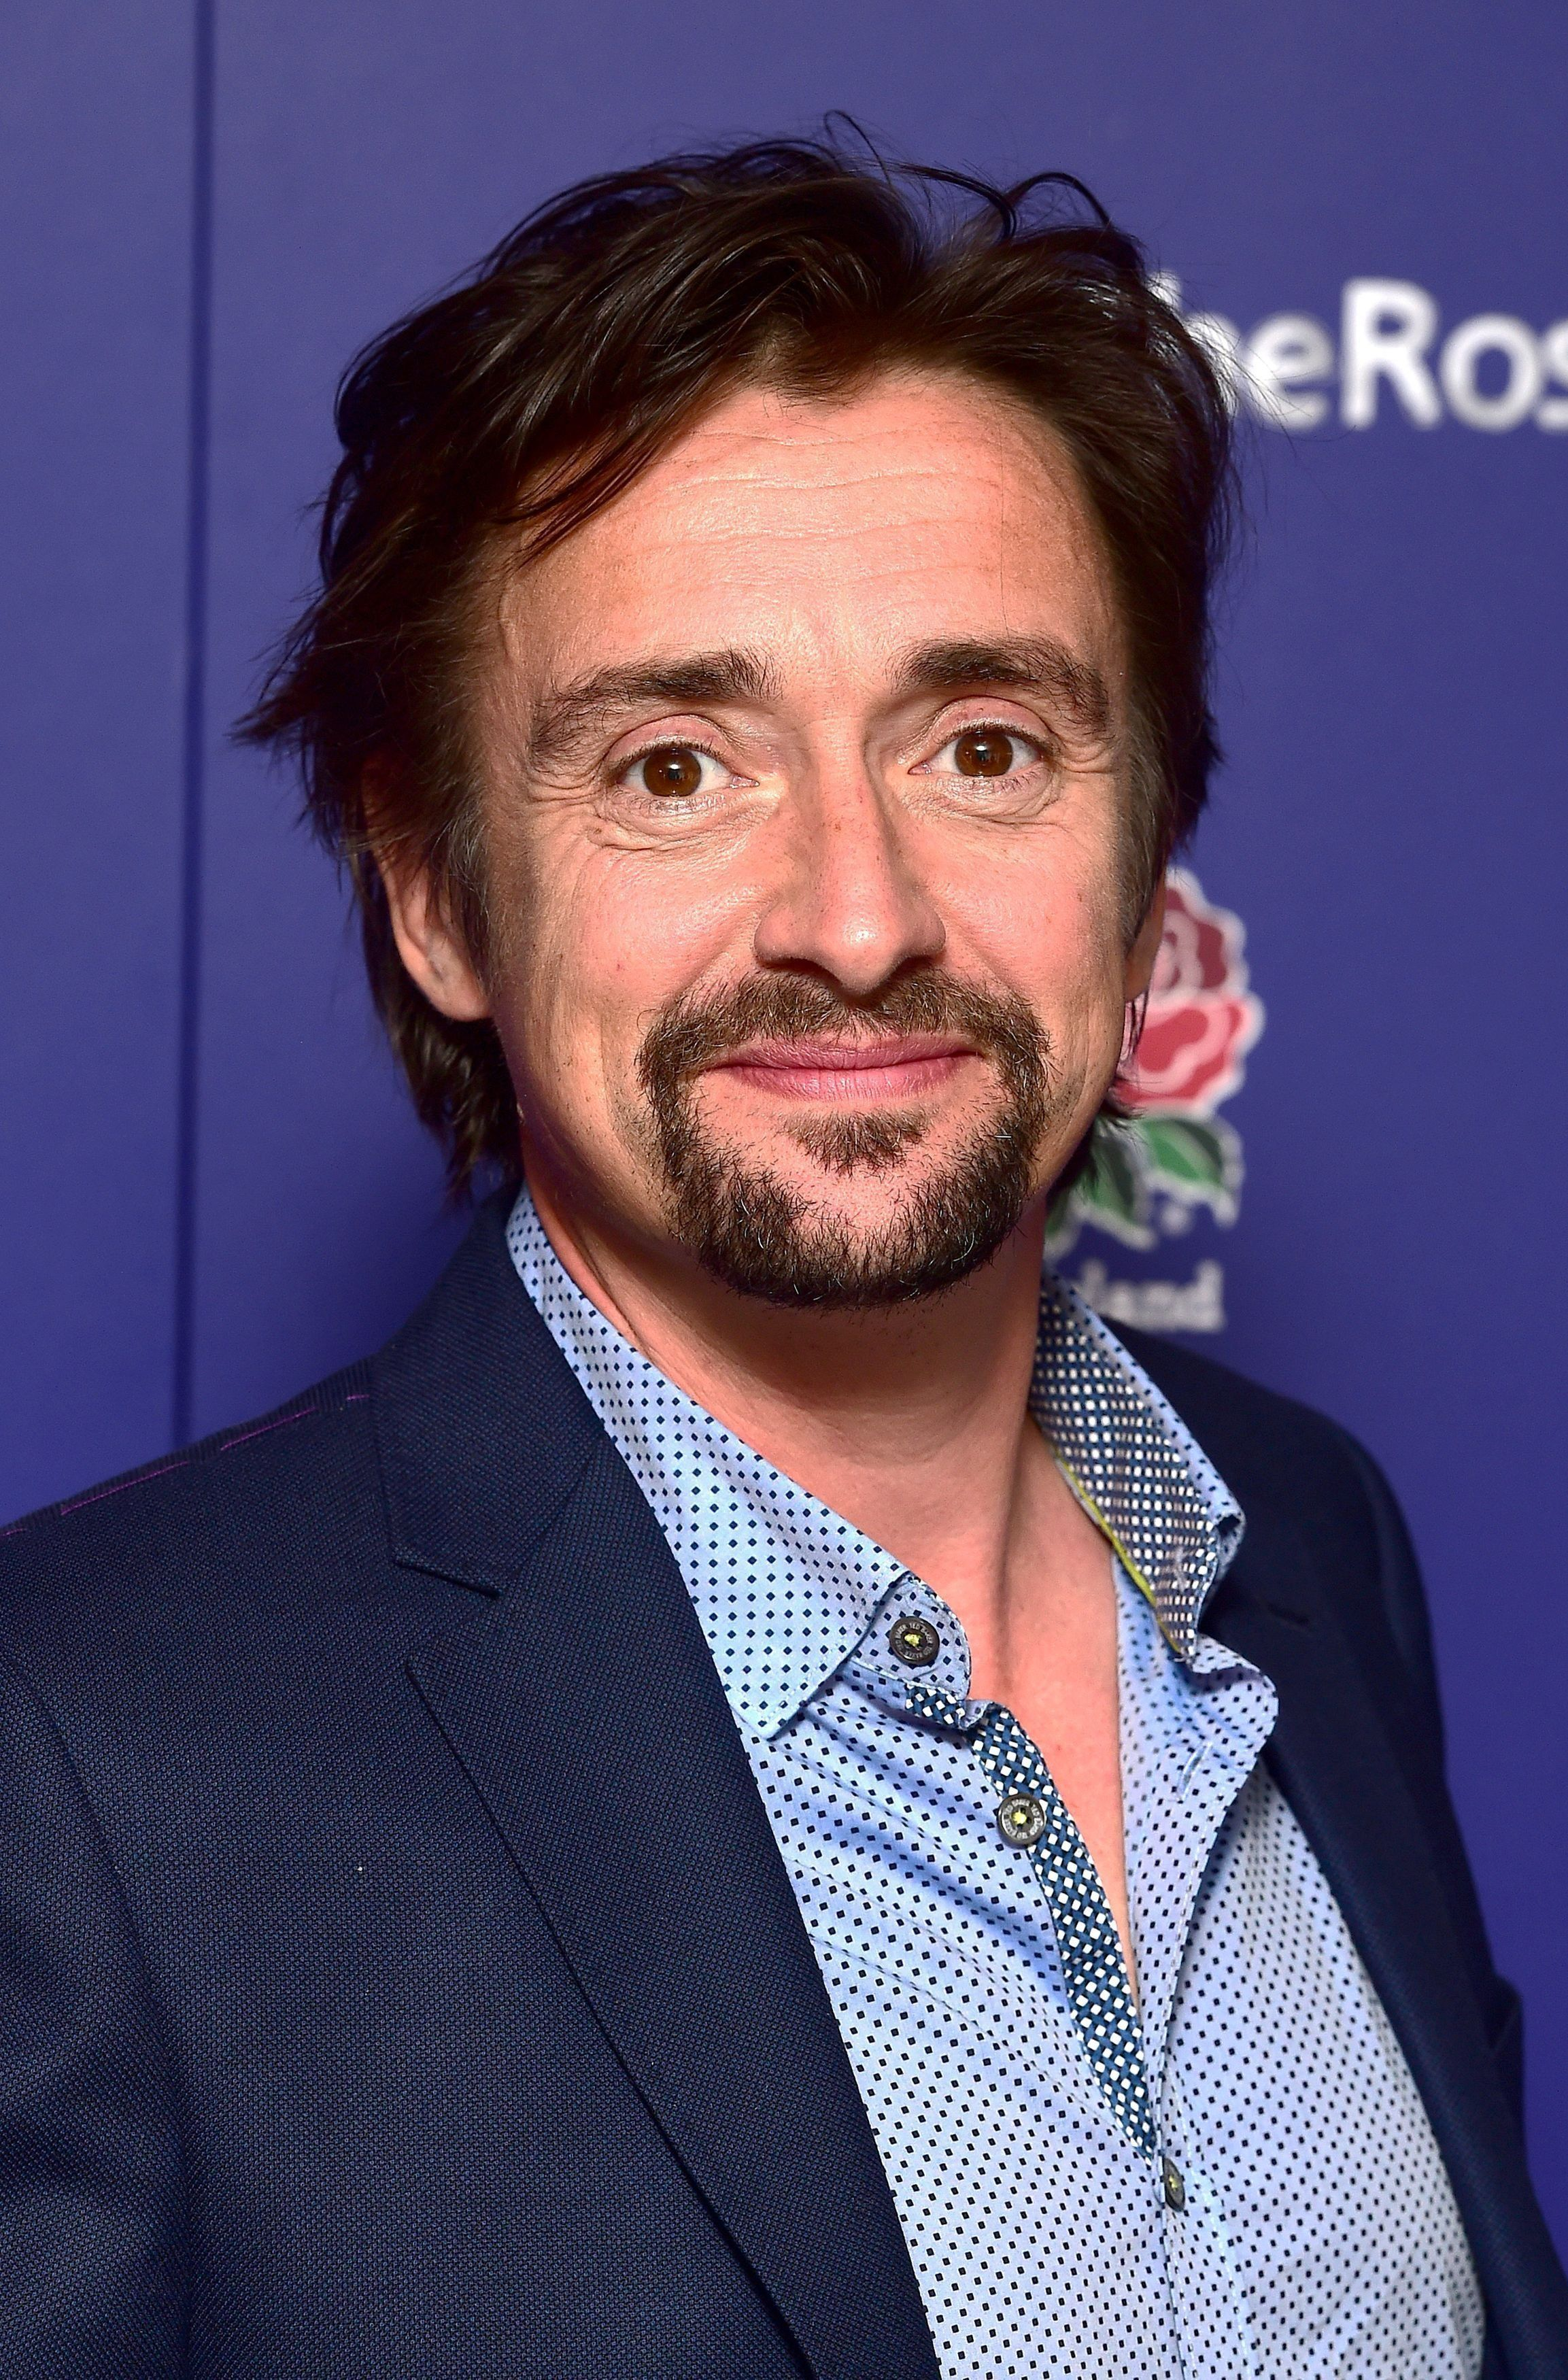 Richard Hammond Gets Schooled After Saying He Doesn't Understand Why LGBT+ People Come Out Publicly